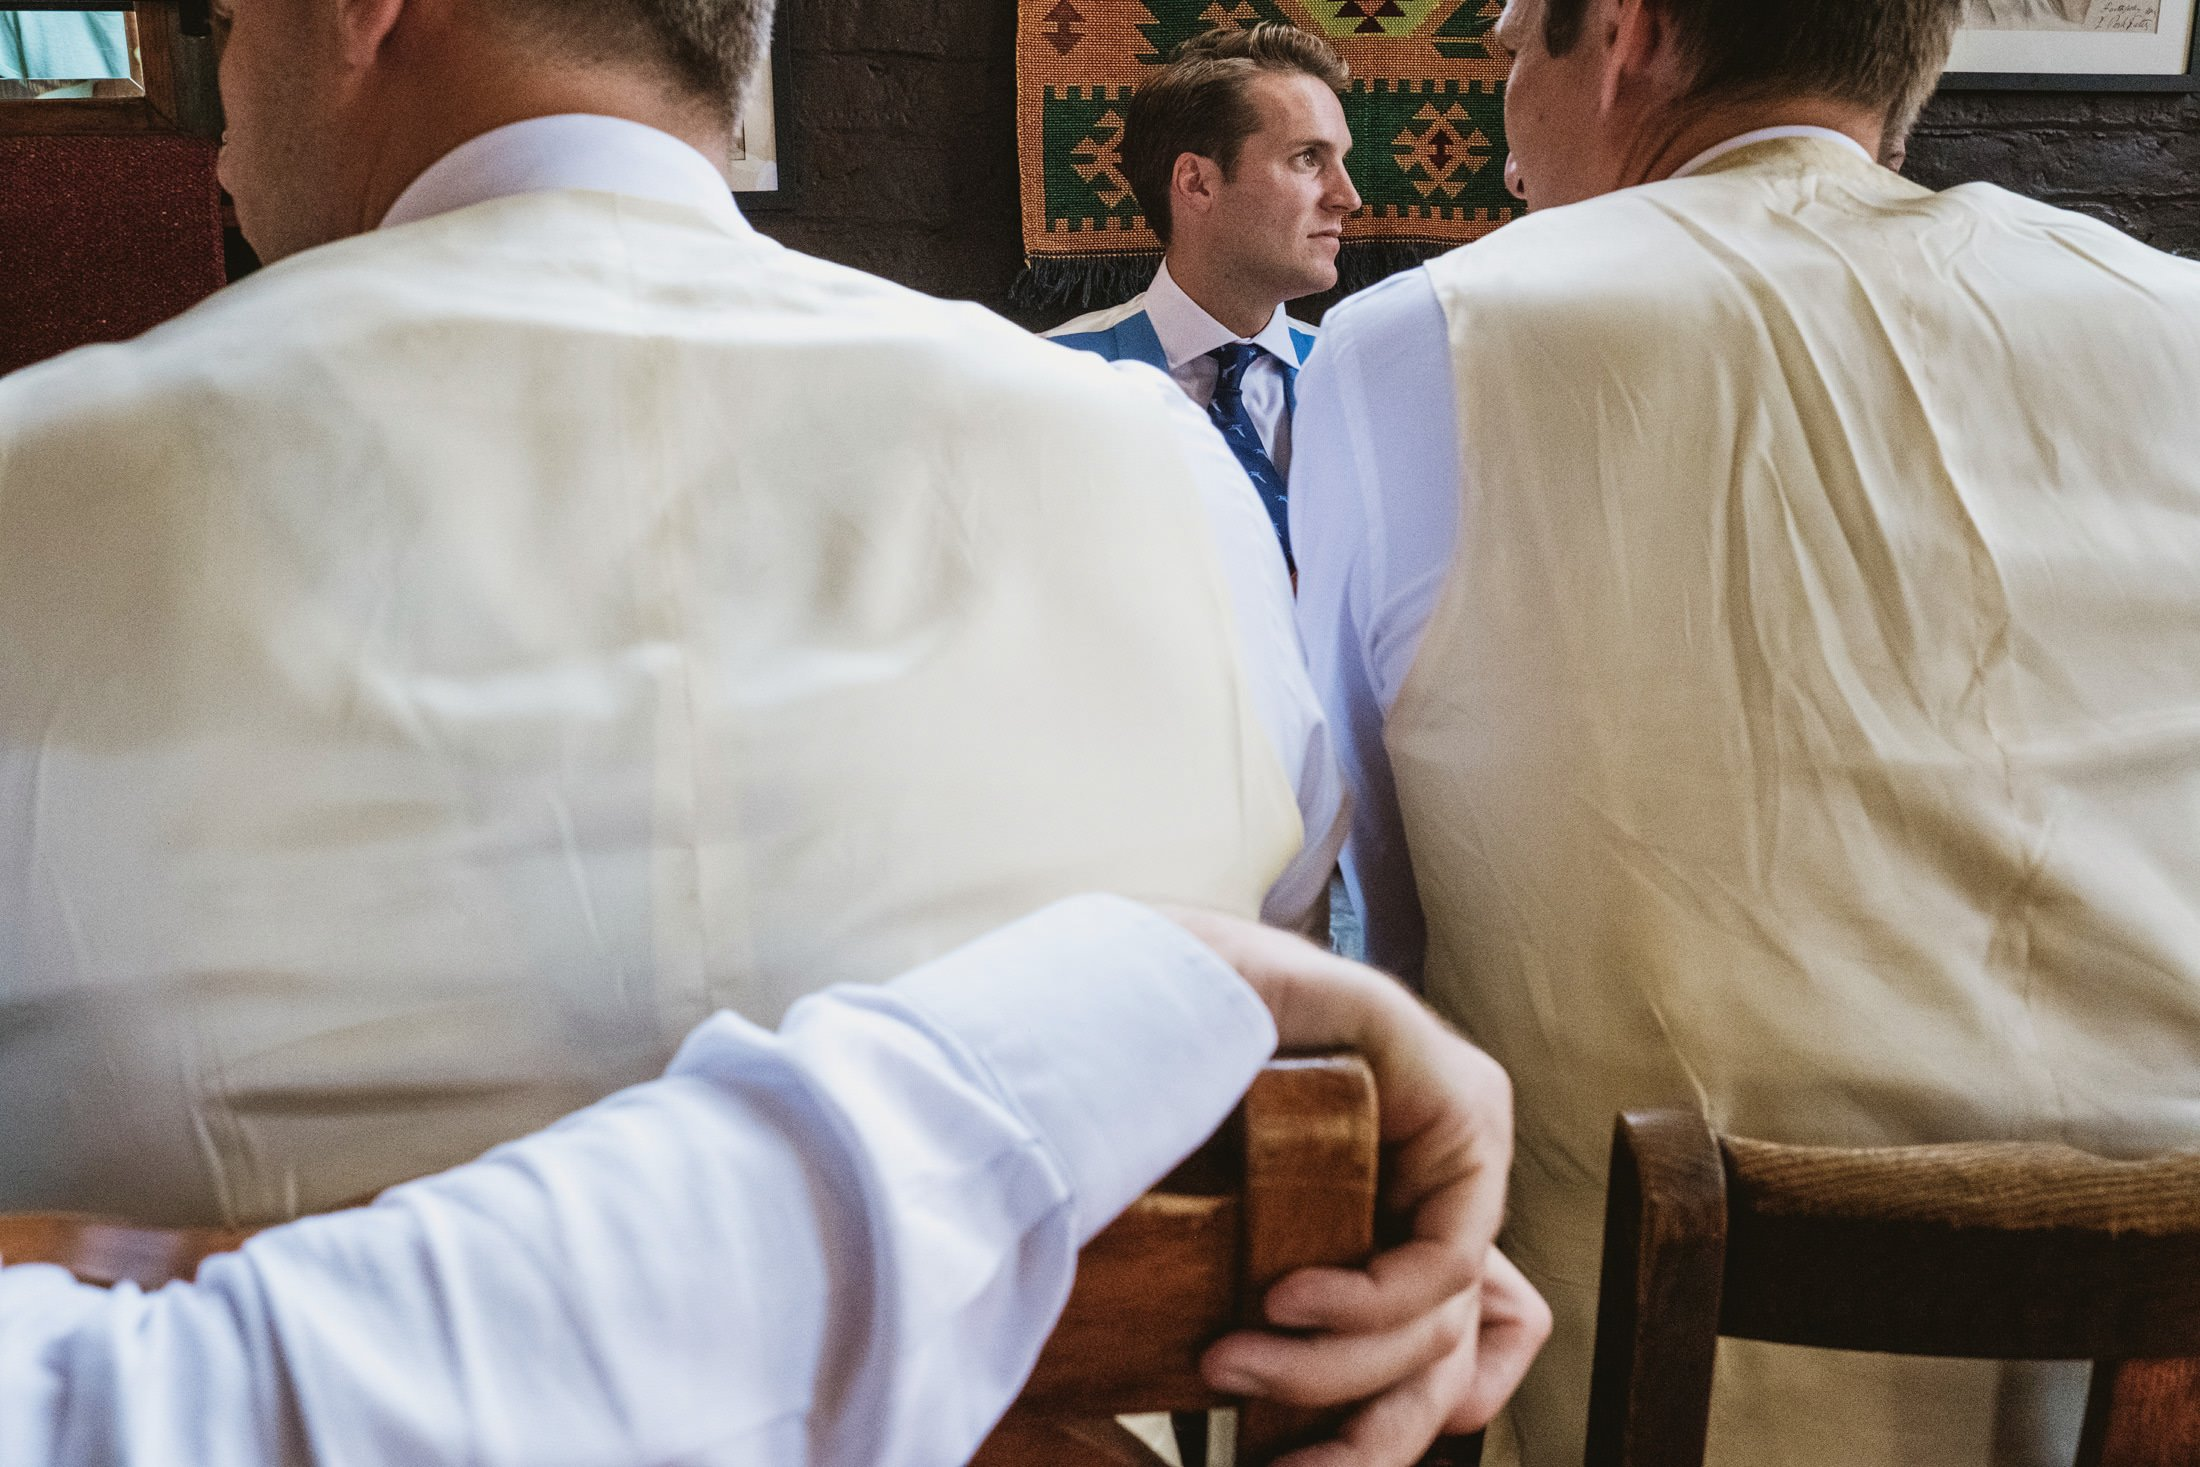 groom framed between two other people